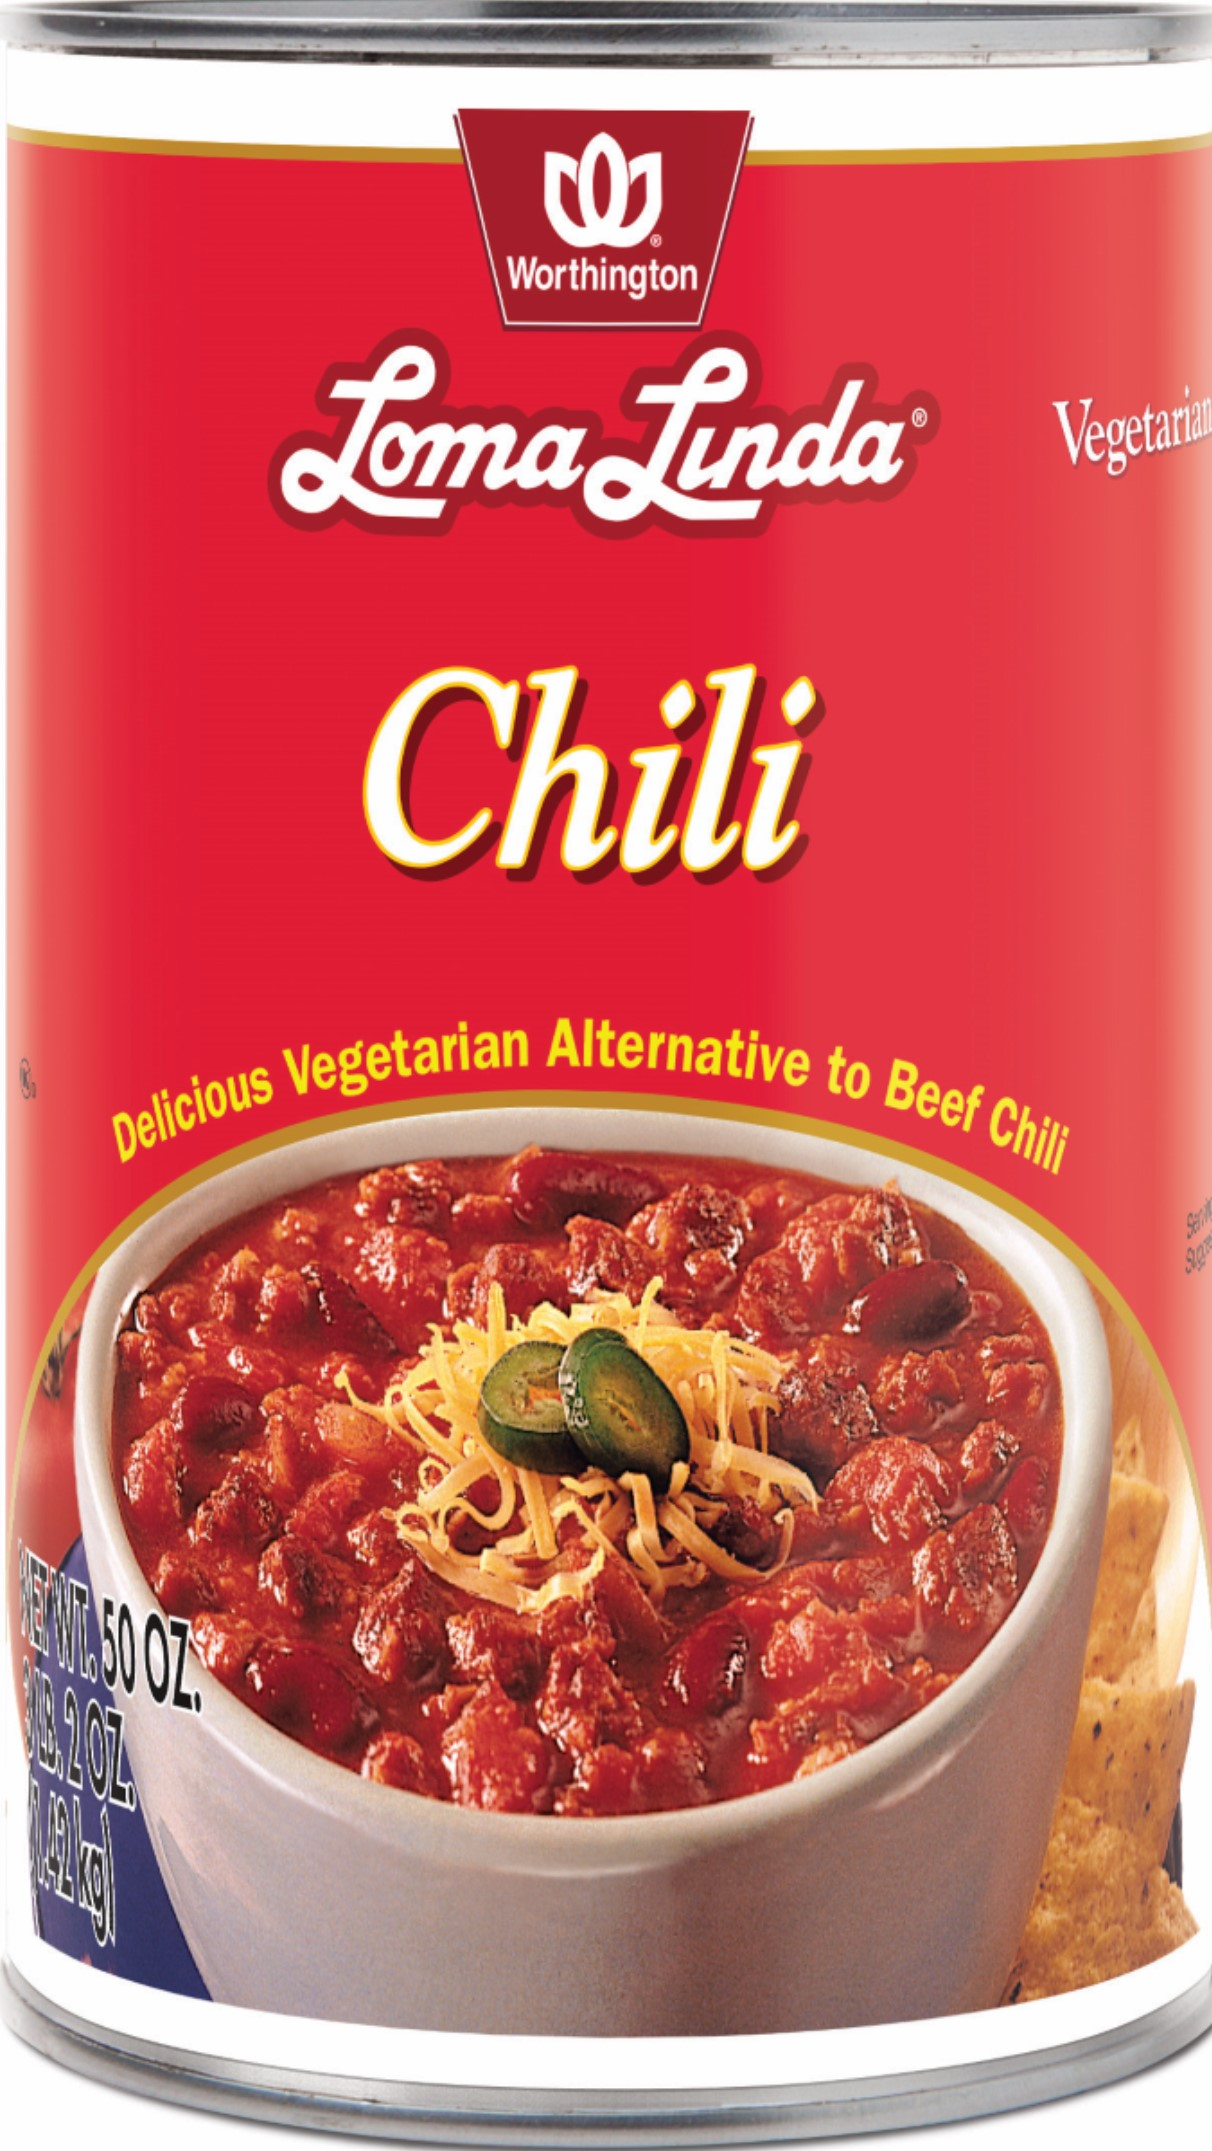 CHILI WR FAMILY SIZE CASE,WORTHINGTON,100052